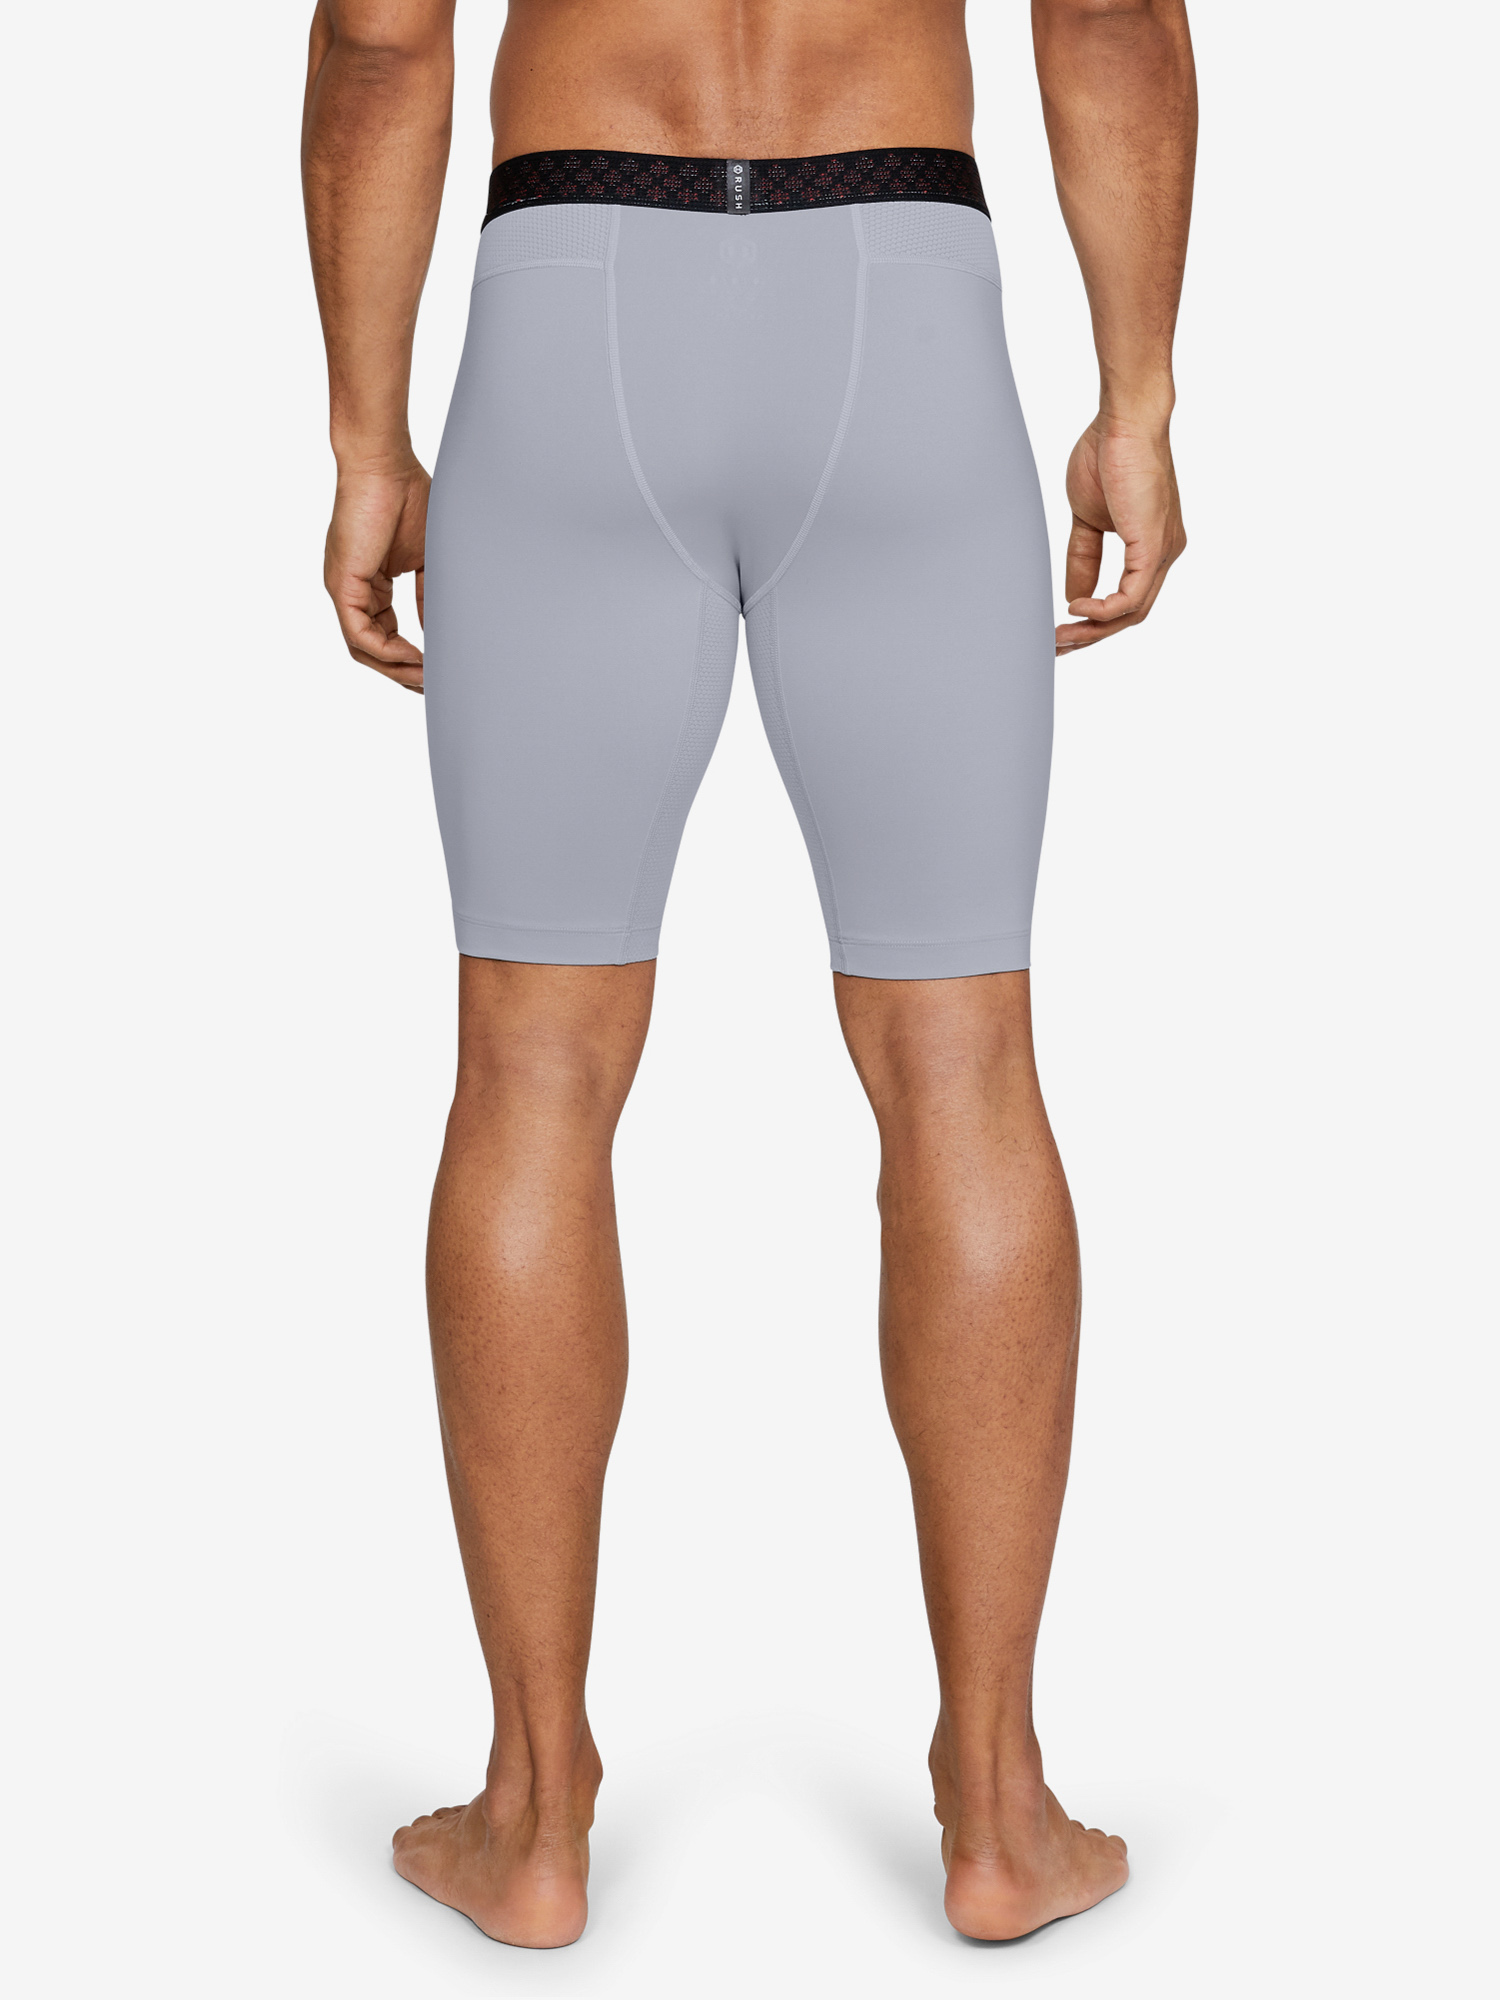 Kompresní šortky Under Armour Rush Comp Short (2)